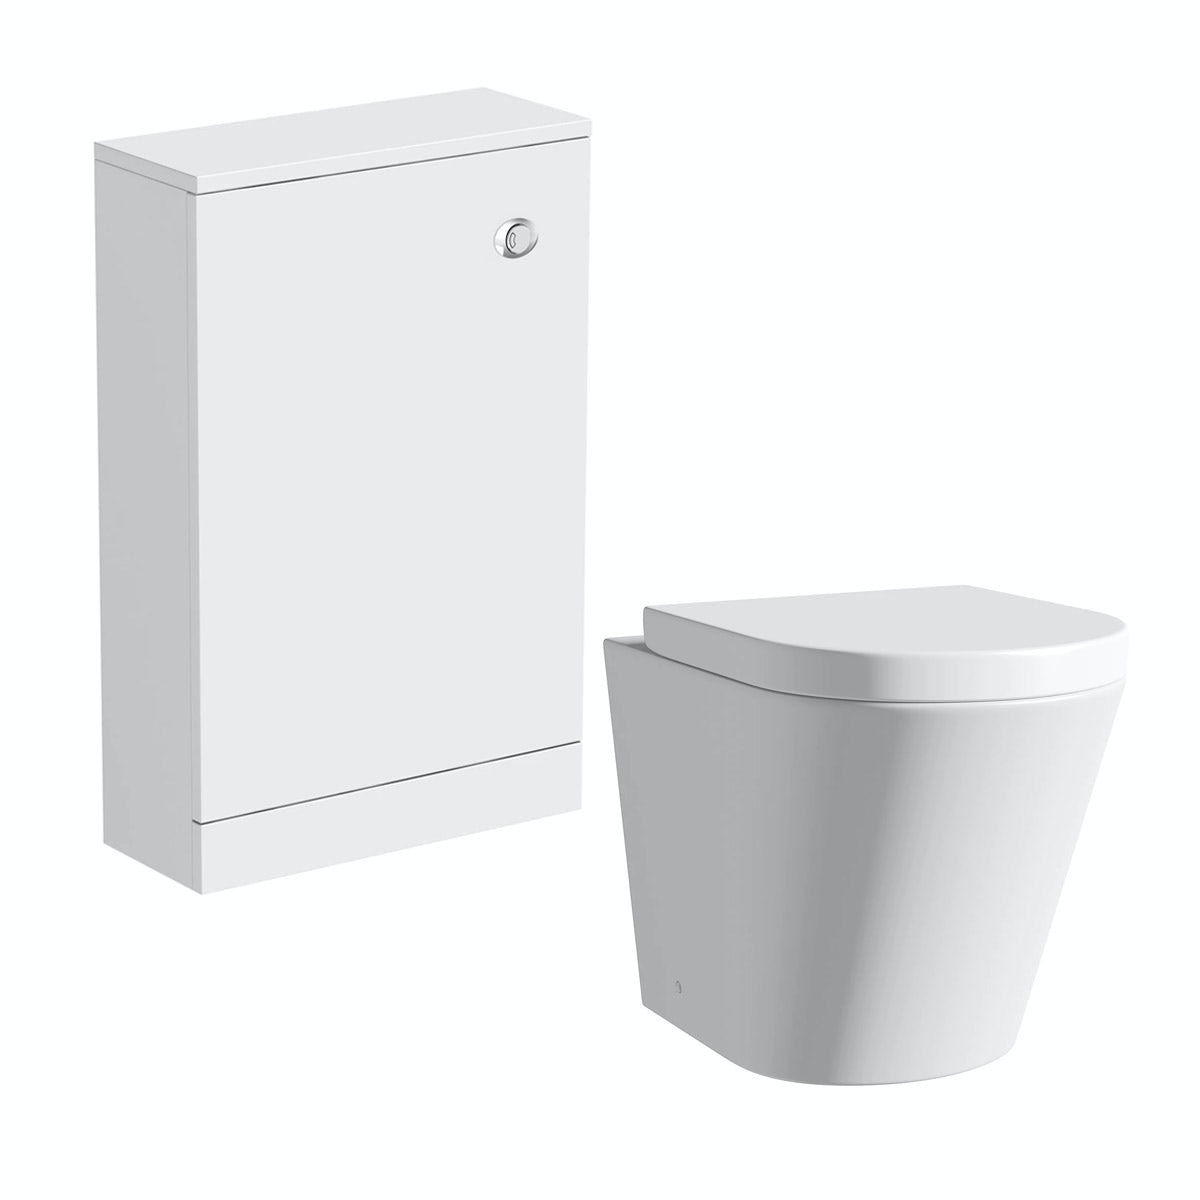 Mode Smart white back to wall toilet unit and Arte toilet with seat